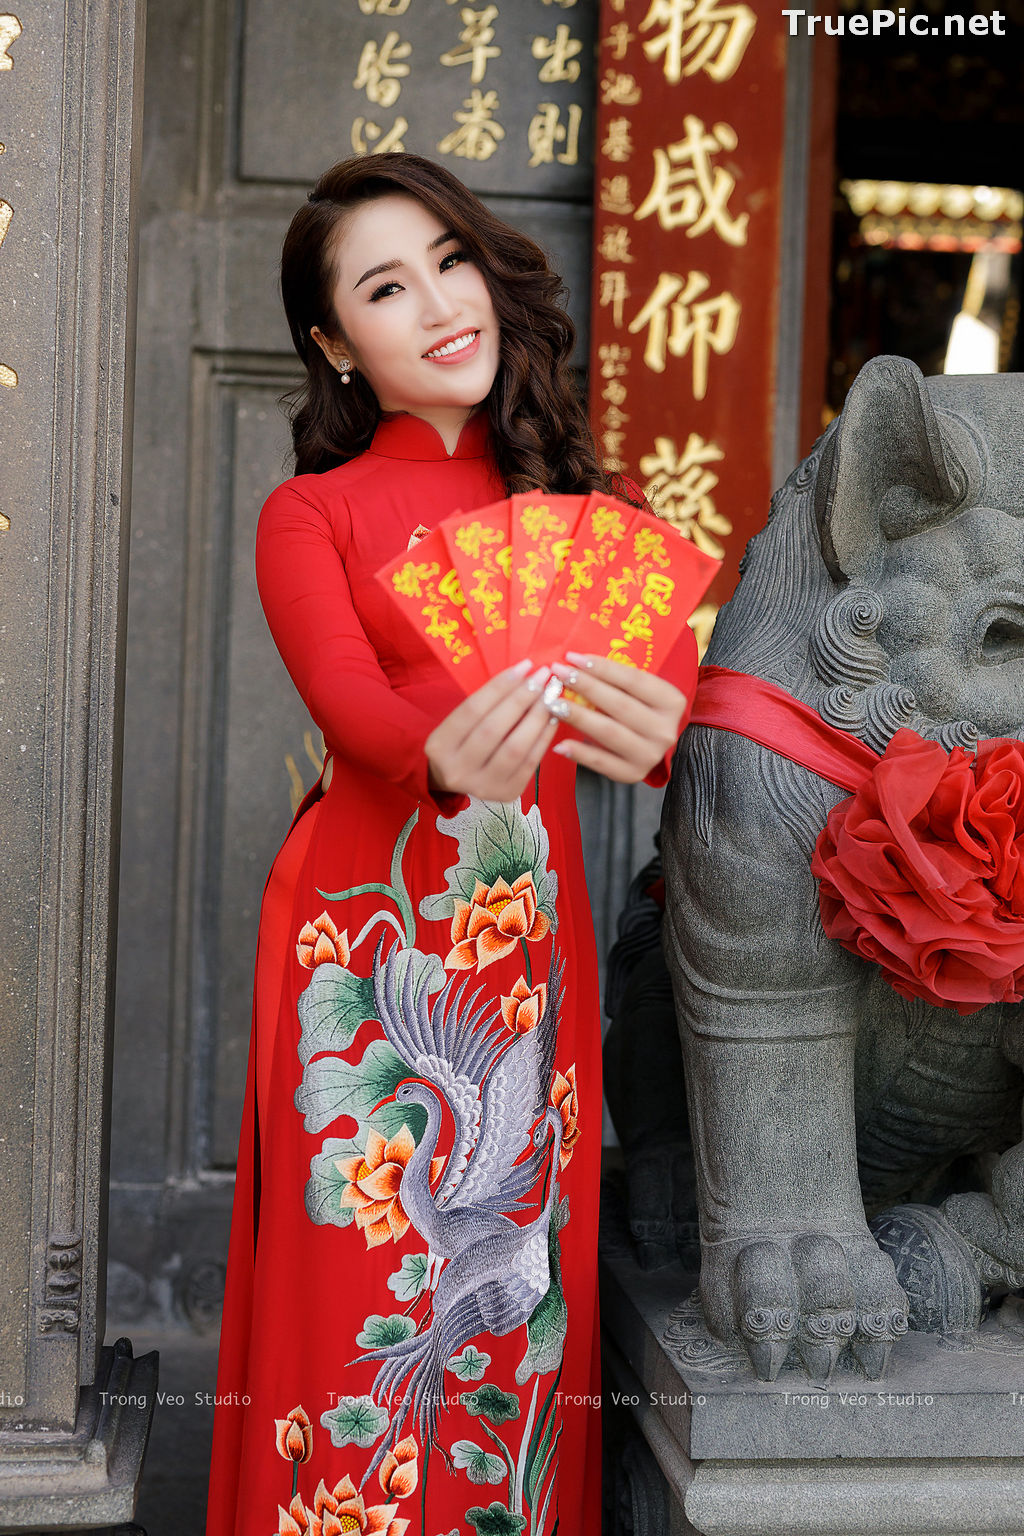 Image The Beauty of Vietnamese Girls with Traditional Dress (Ao Dai) #4 - TruePic.net - Picture-10